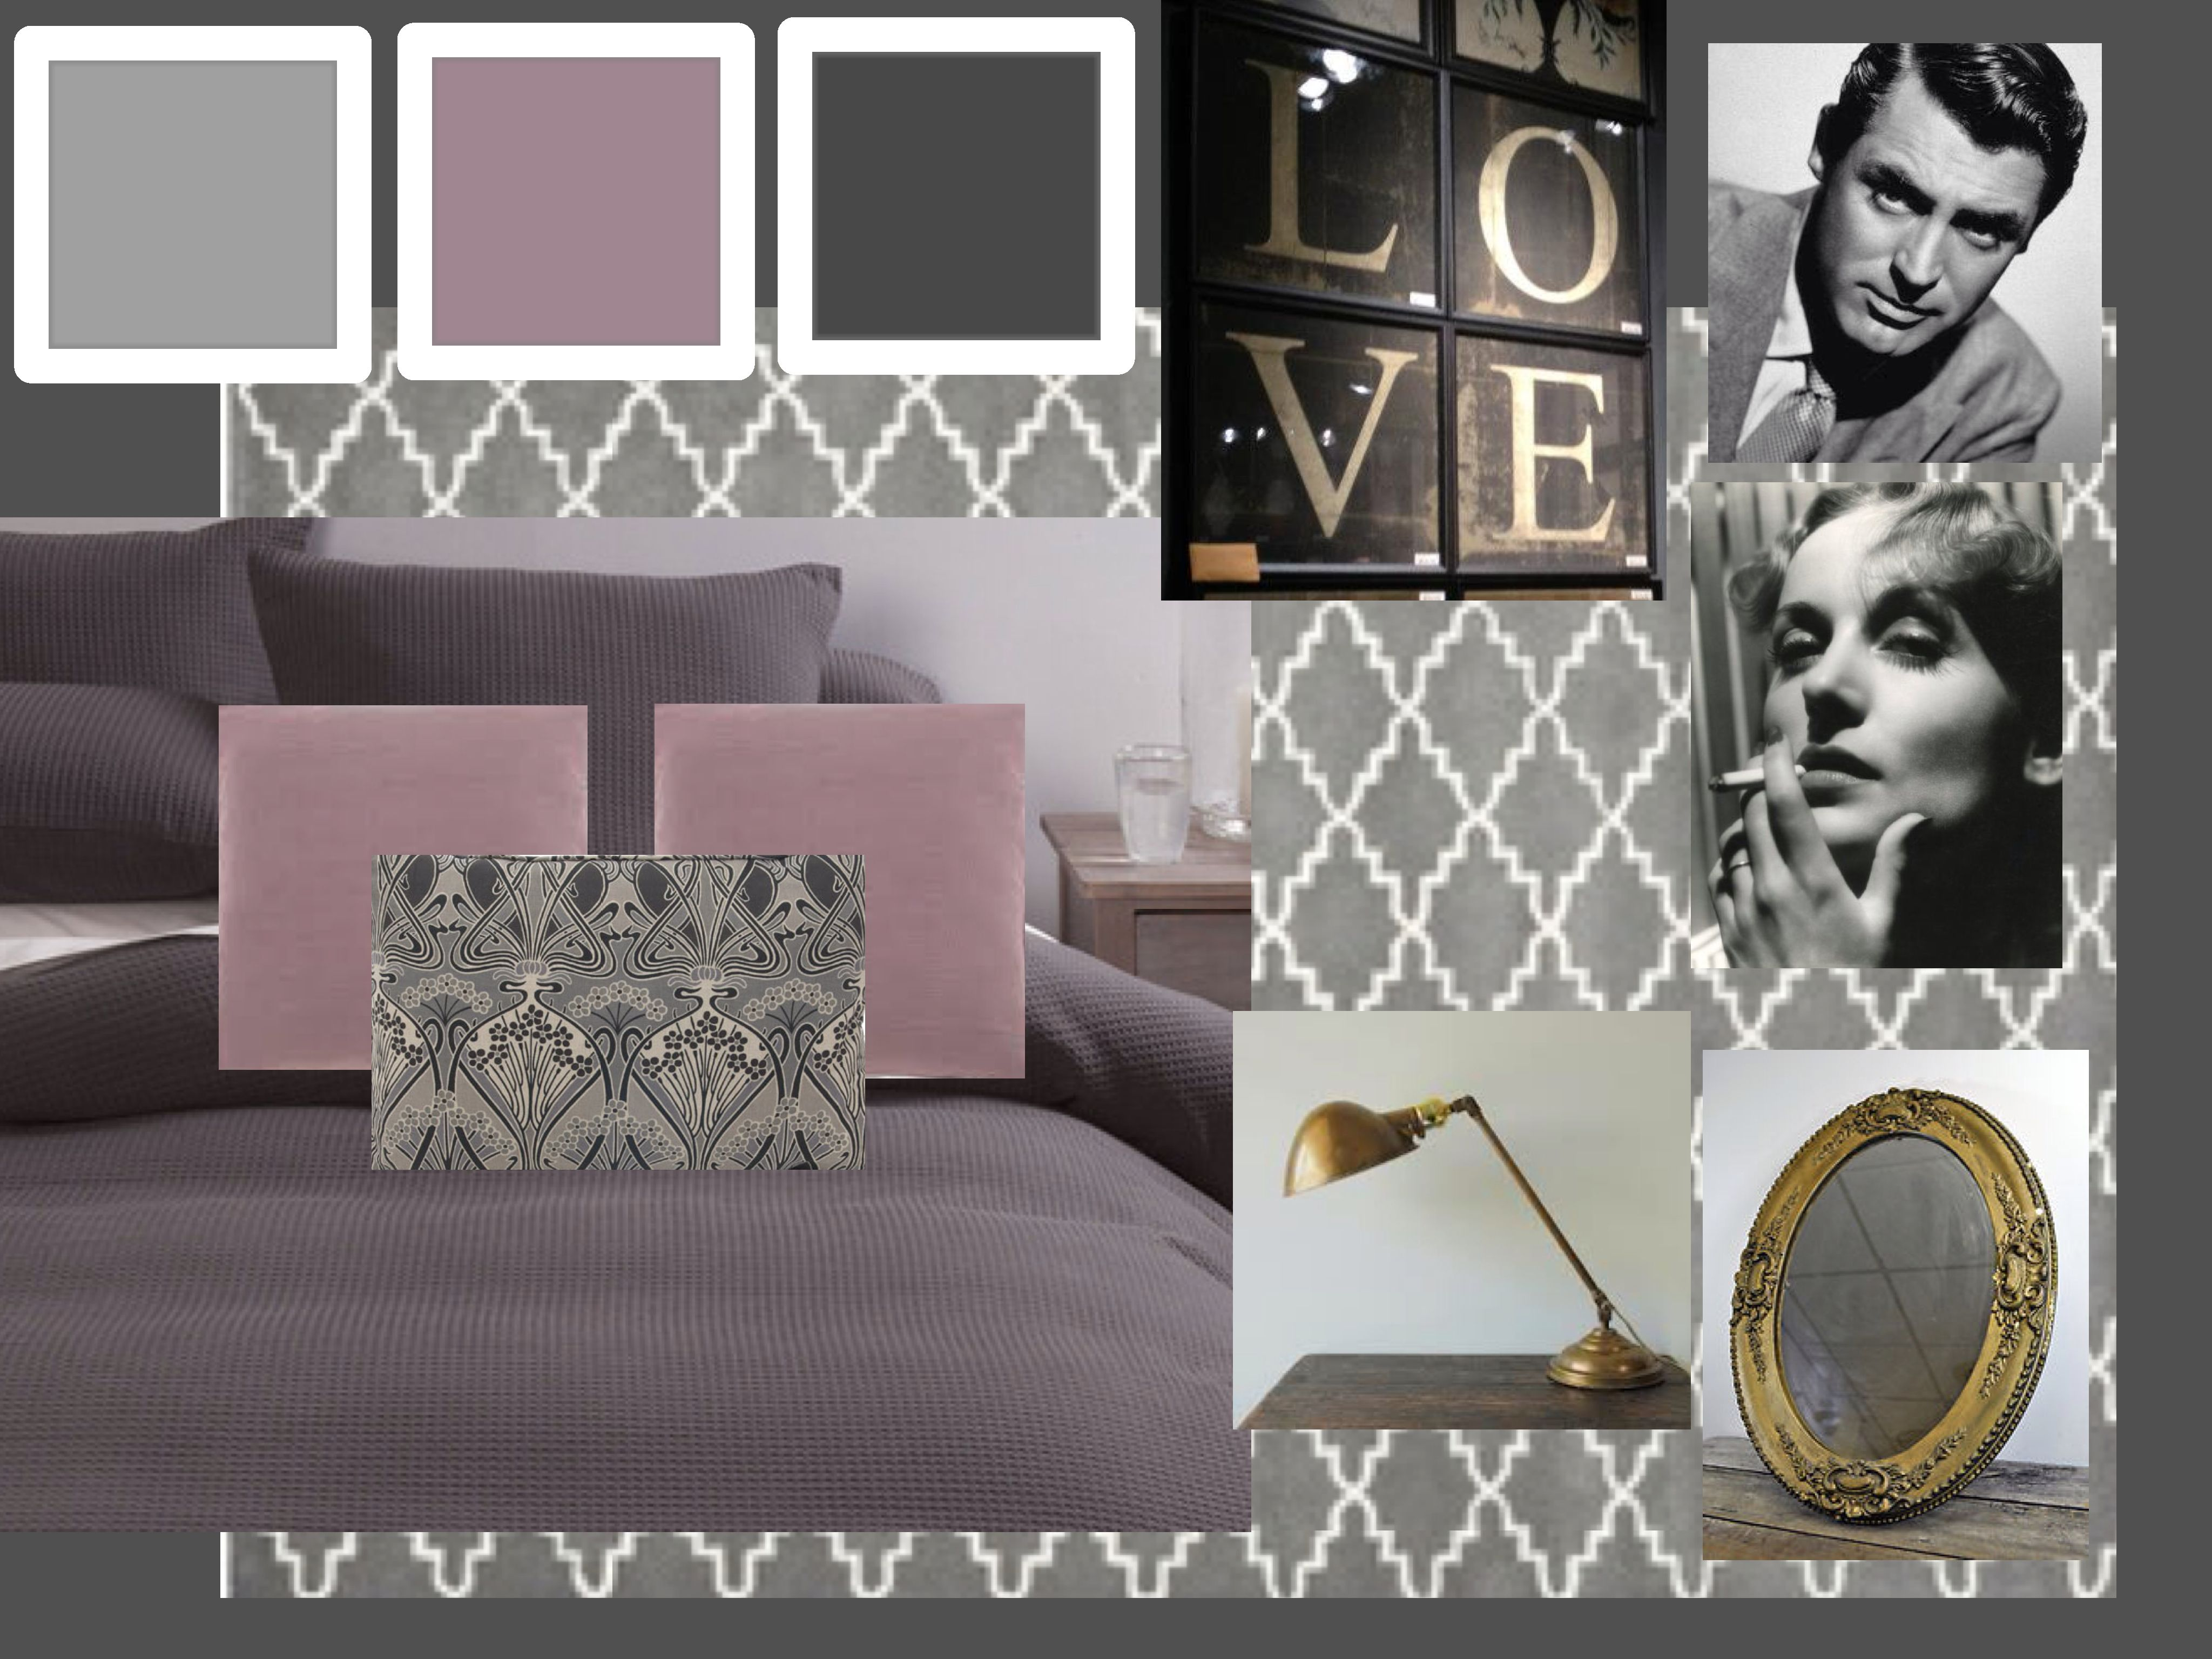 French Industrial Inspired Bedroom Interior Decor Mood Board. Charcoal And  Dusty Pink. #grey